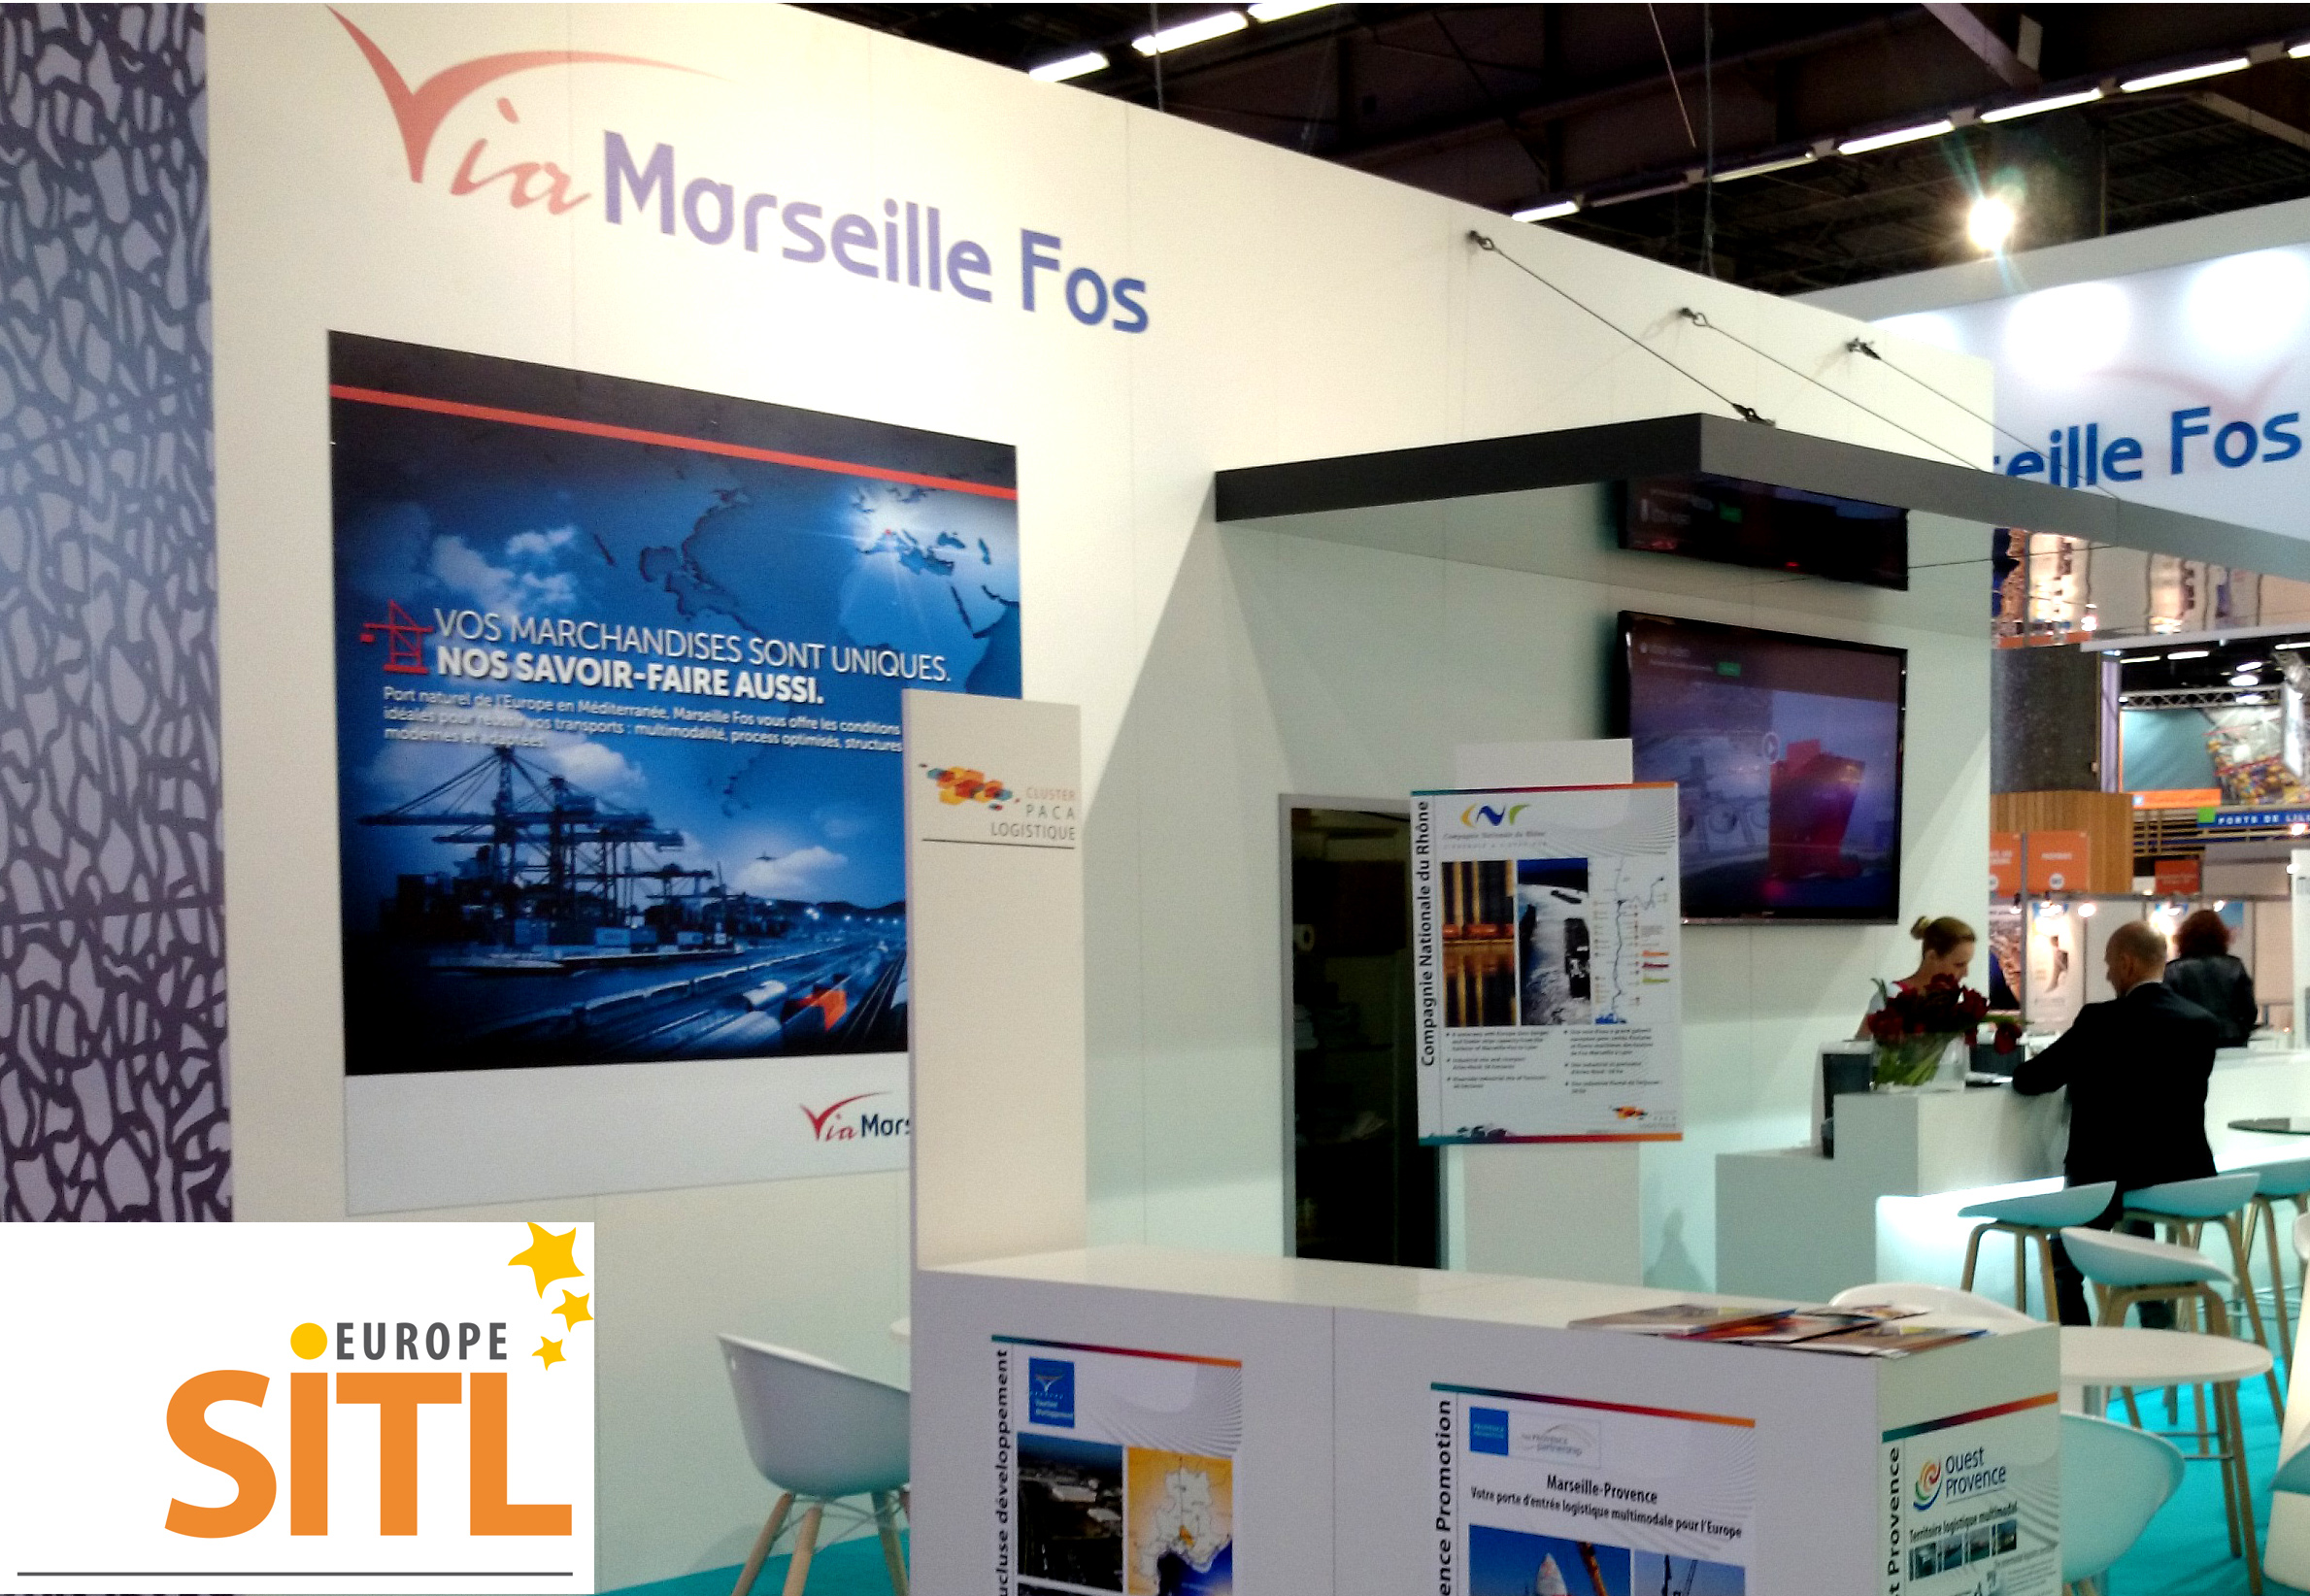 Provence Promotion to attend SITL with the Port of Marseille and Via Marseille Fos